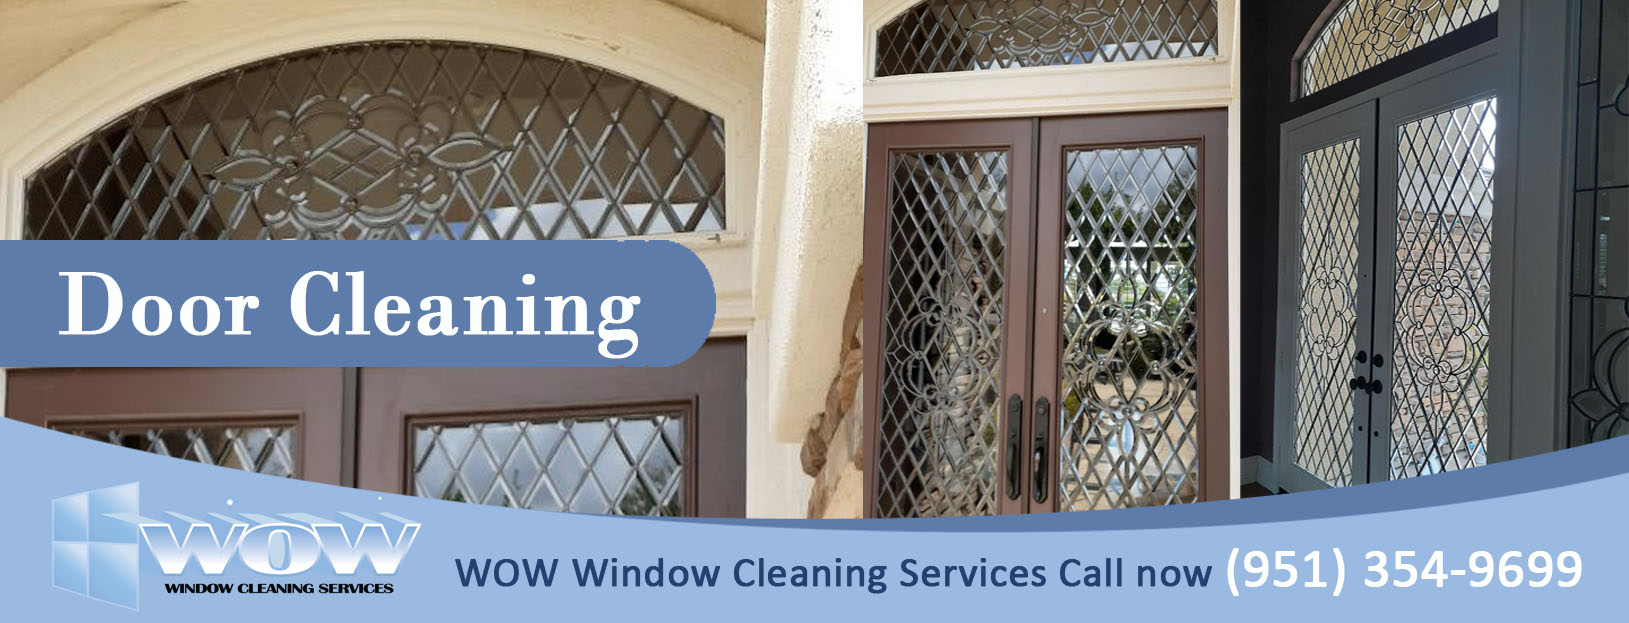 Moreno Valley Riverside Windown Cleaning, house pressure wash, shutters 5